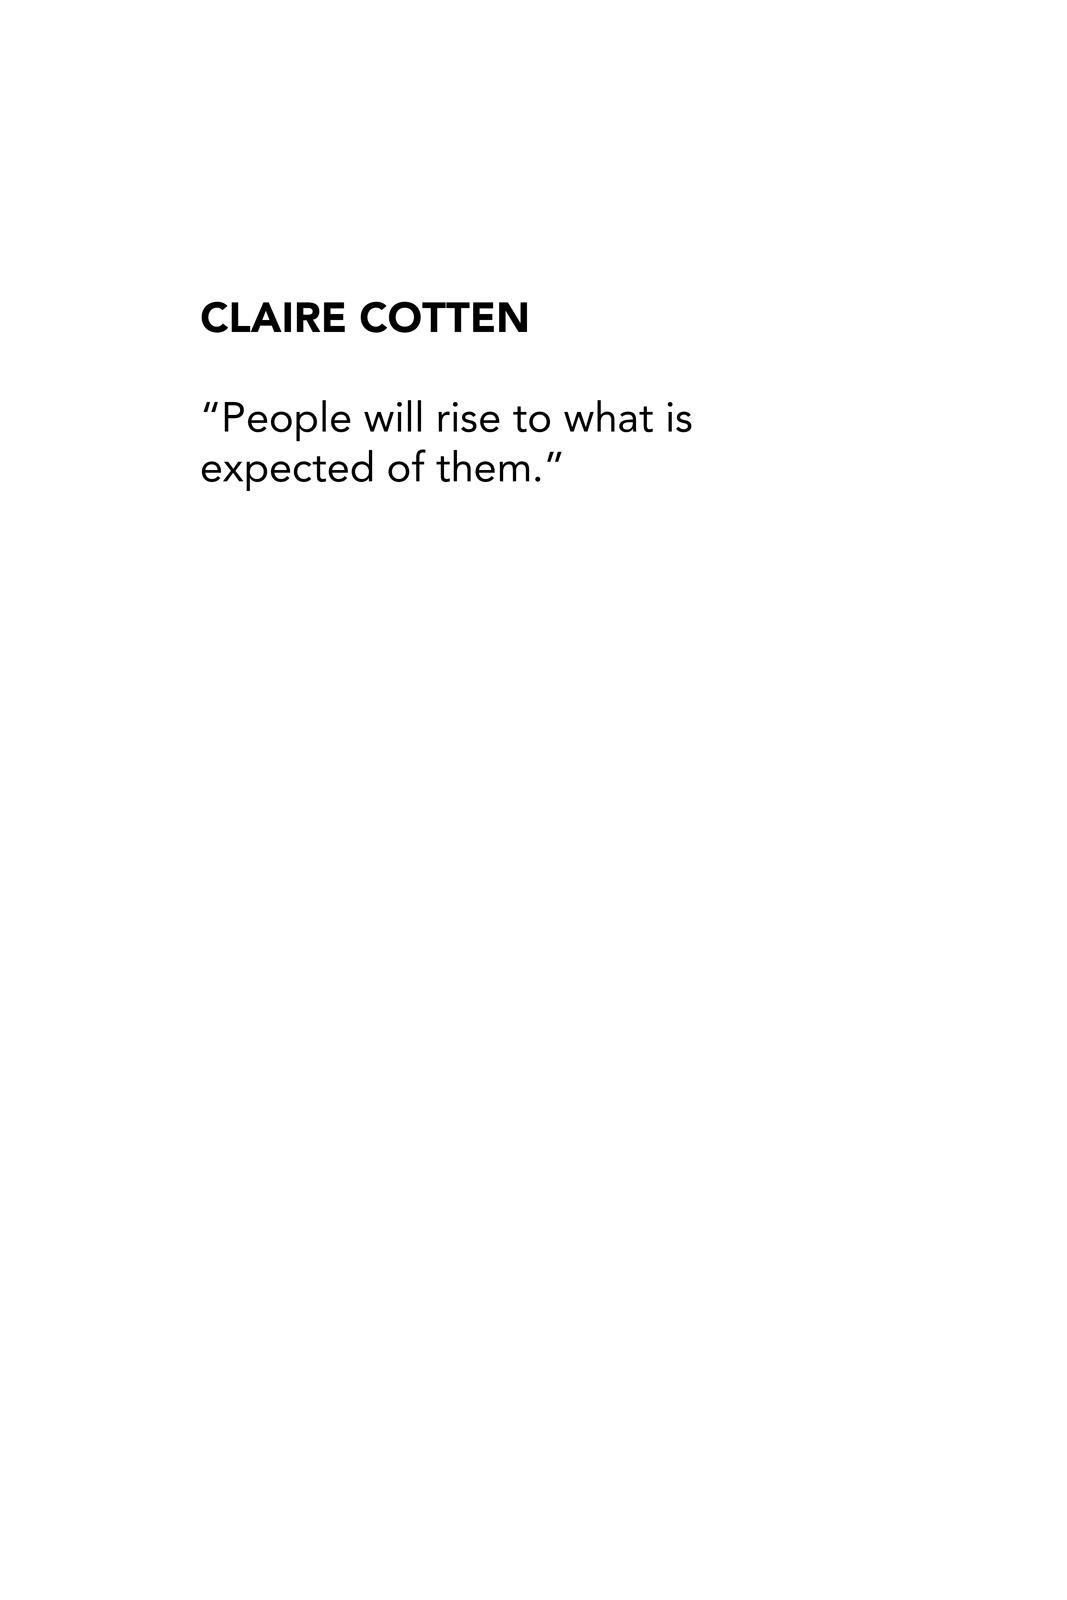 Claire Cotten Quote.jpg